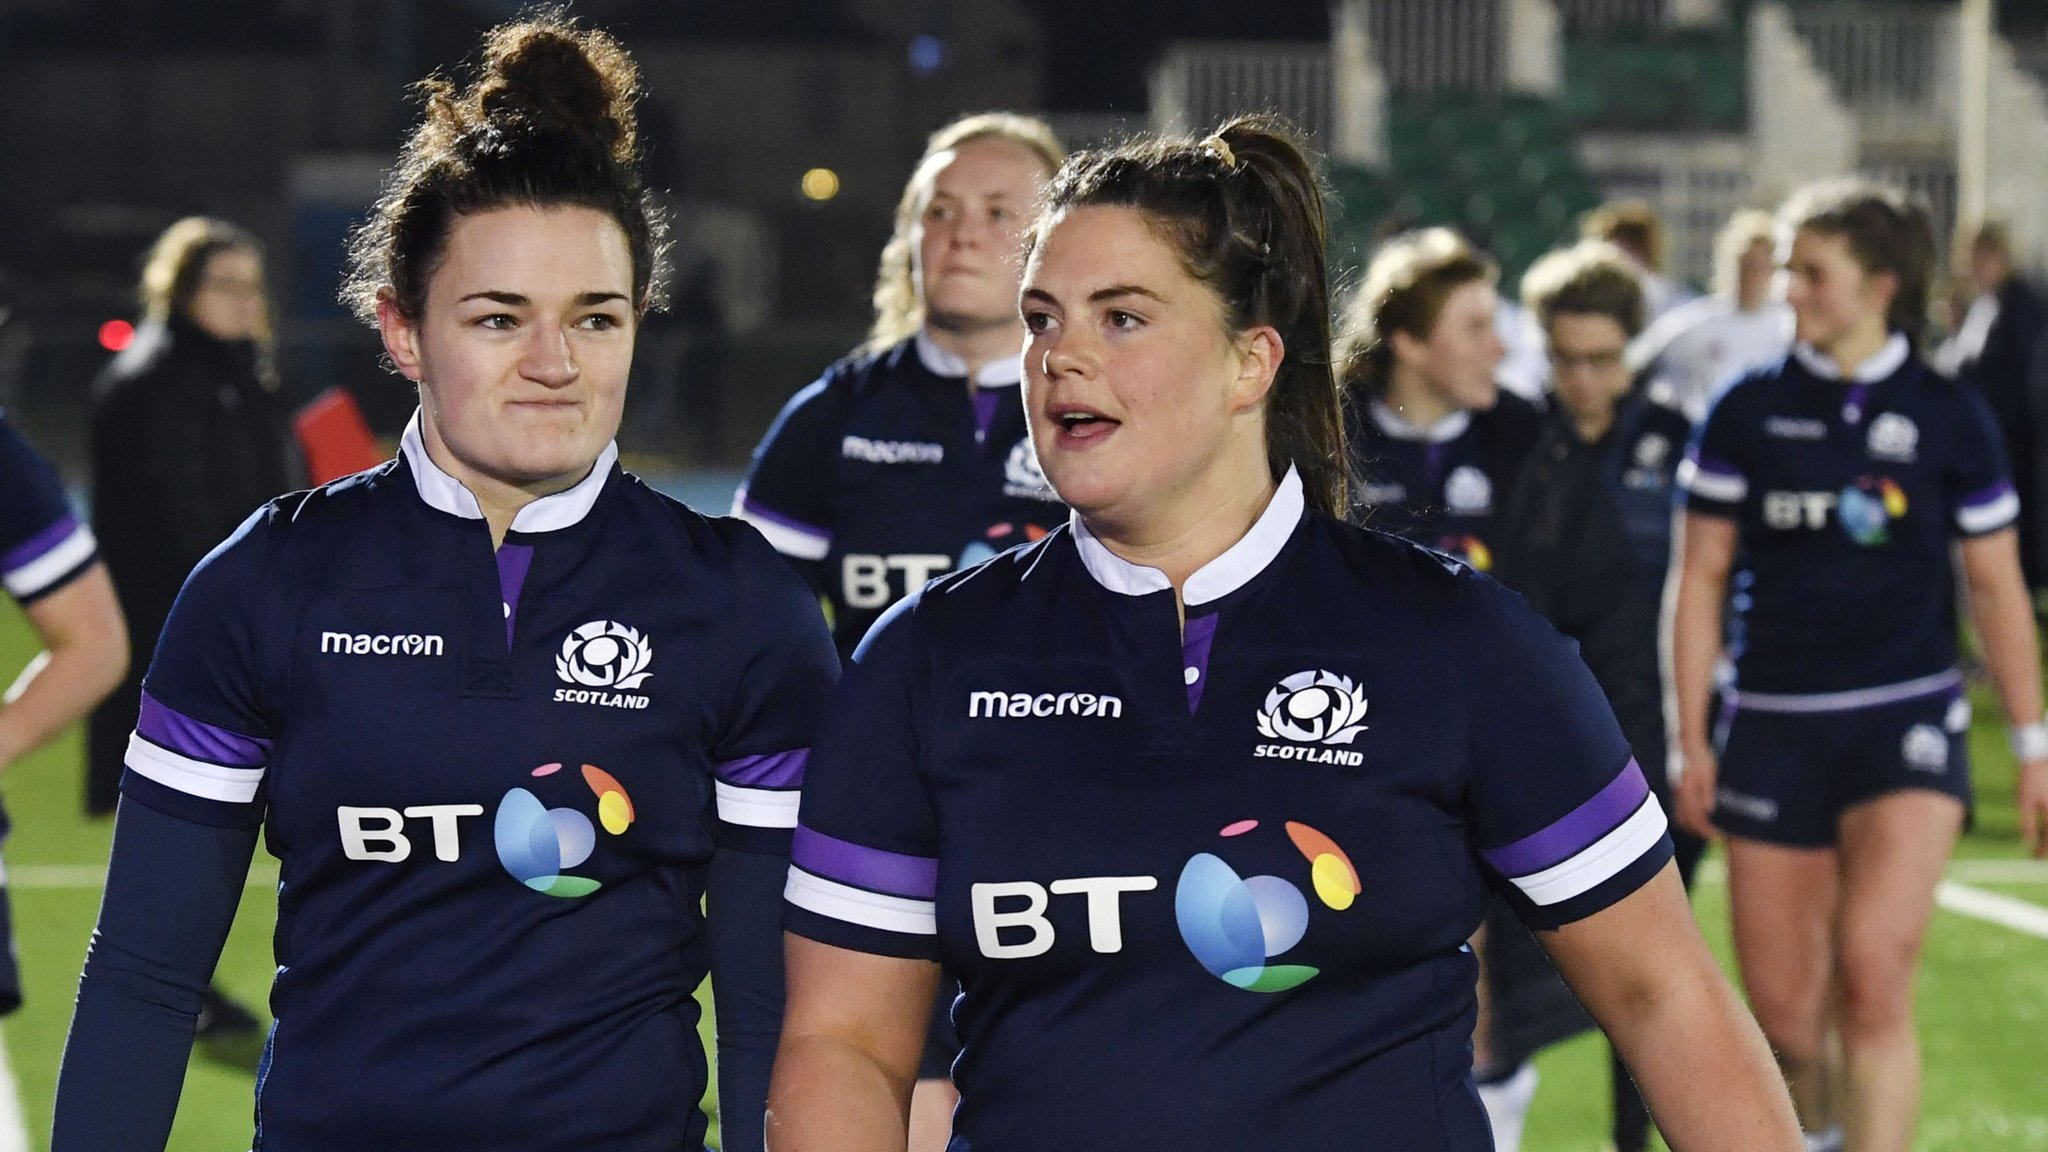 Scotland women's rugby 'needs paradigm shift'